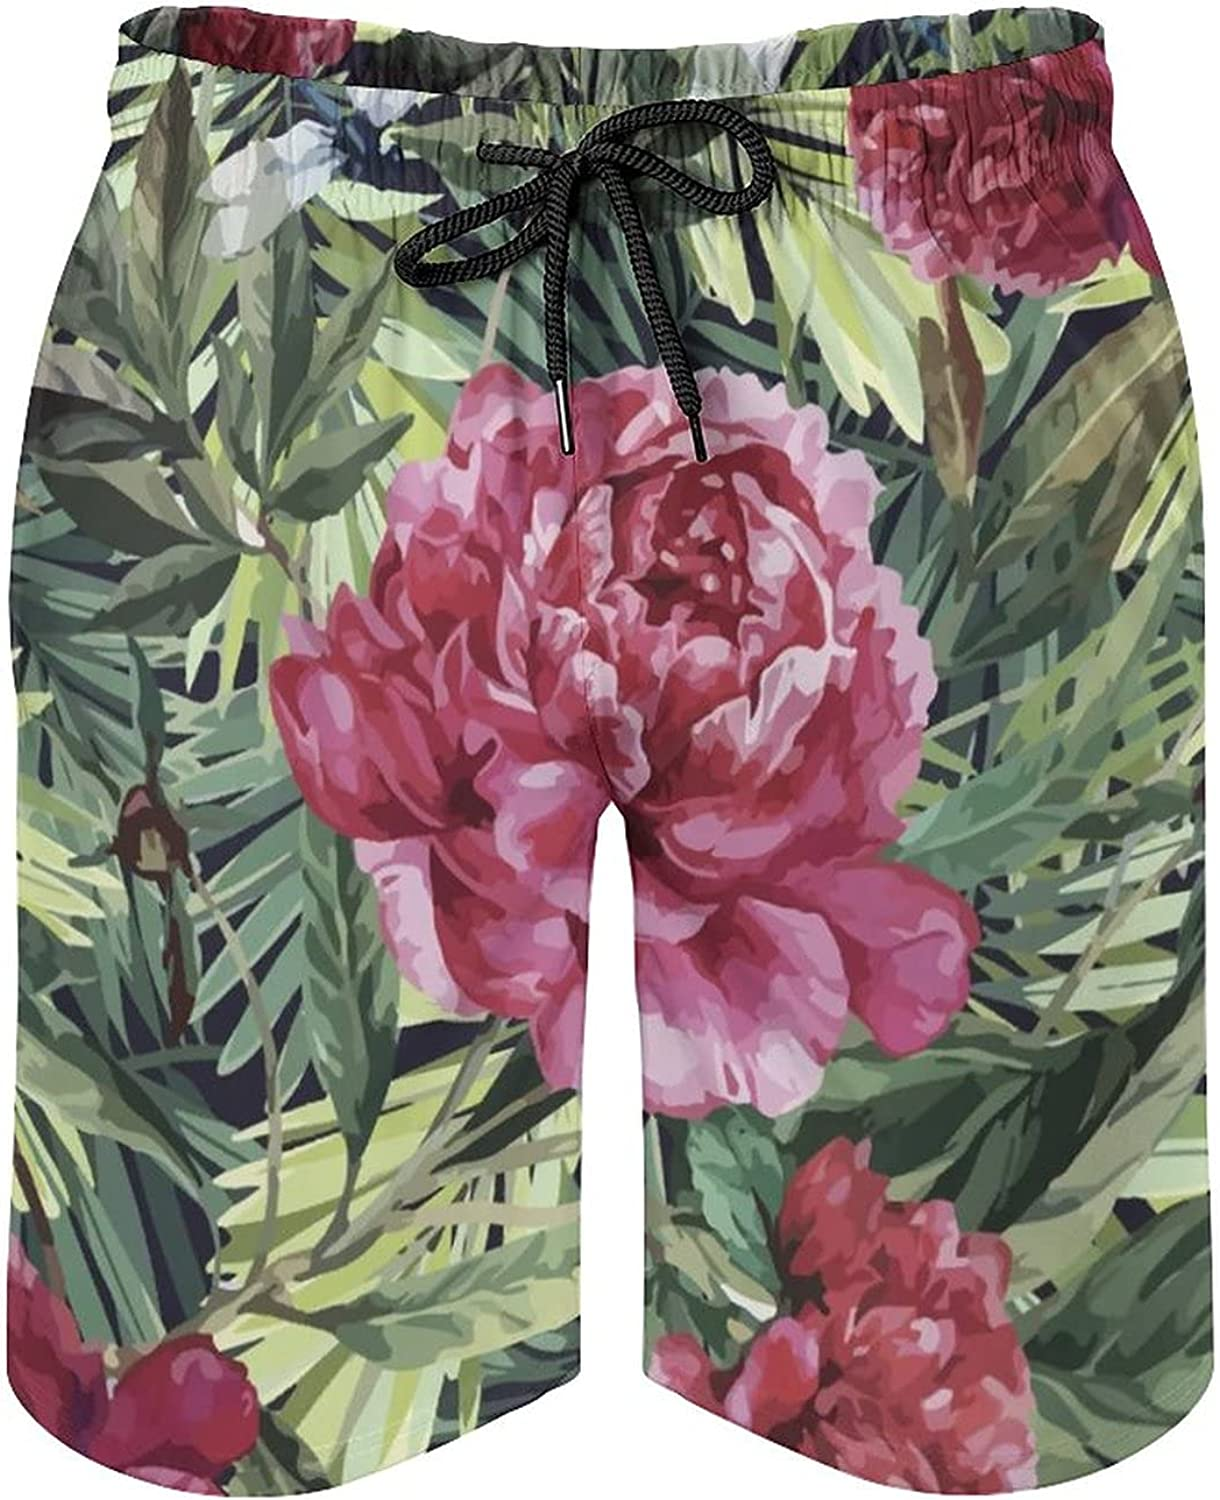 by Unbranded Men's Drawstring Summer Board Shorts with Elastic Waist Flower Pattern